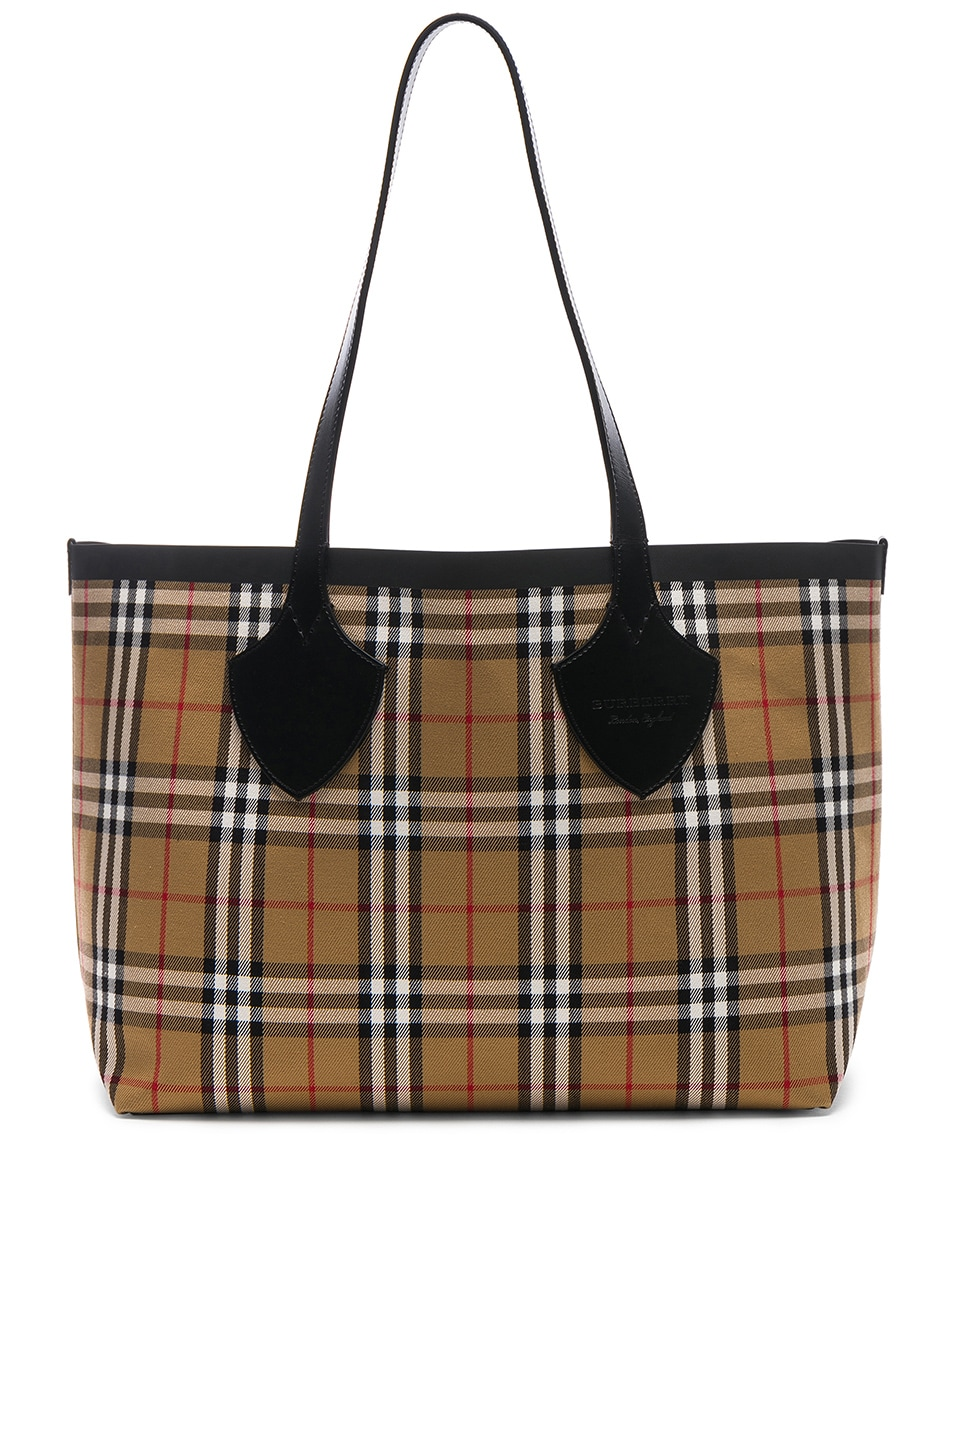 c721a714b47 Image 1 of Burberry Reversible Vintage Check Tote in Yellow   Bright Red